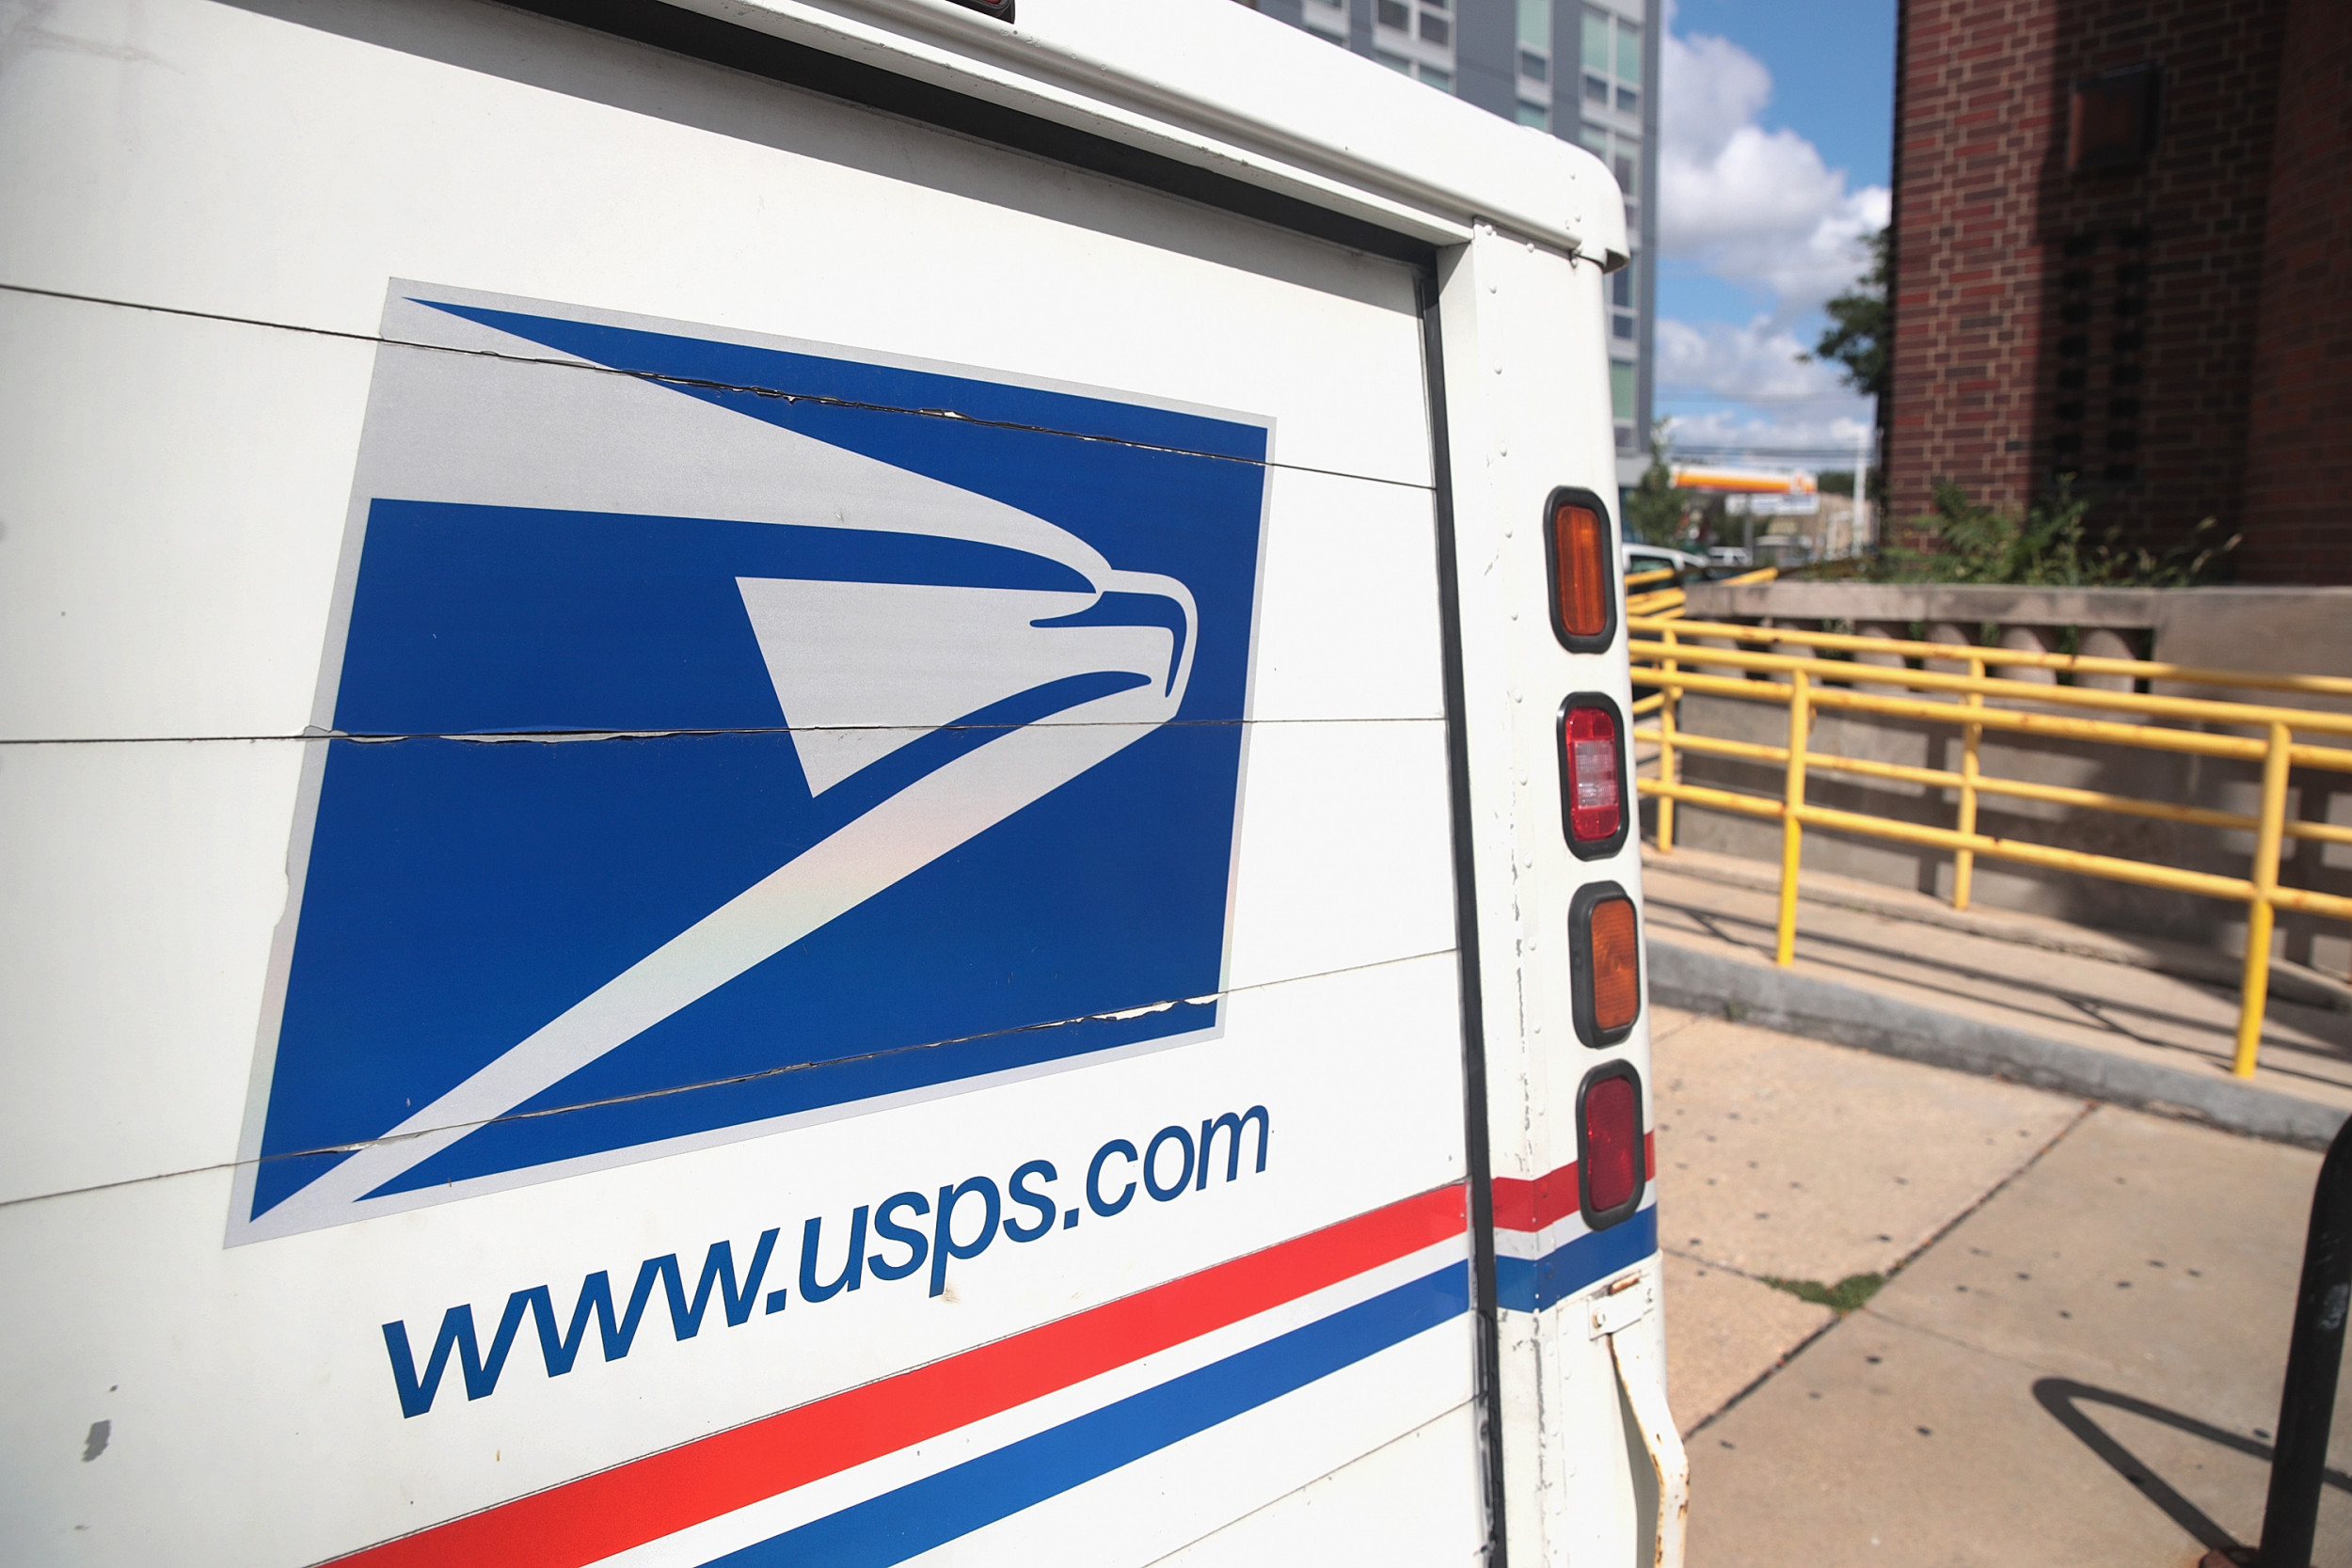 U S Postal Worker Shot In Back While Delivering Mail In Texas 50 000 Reward Offered For Info On Suspect